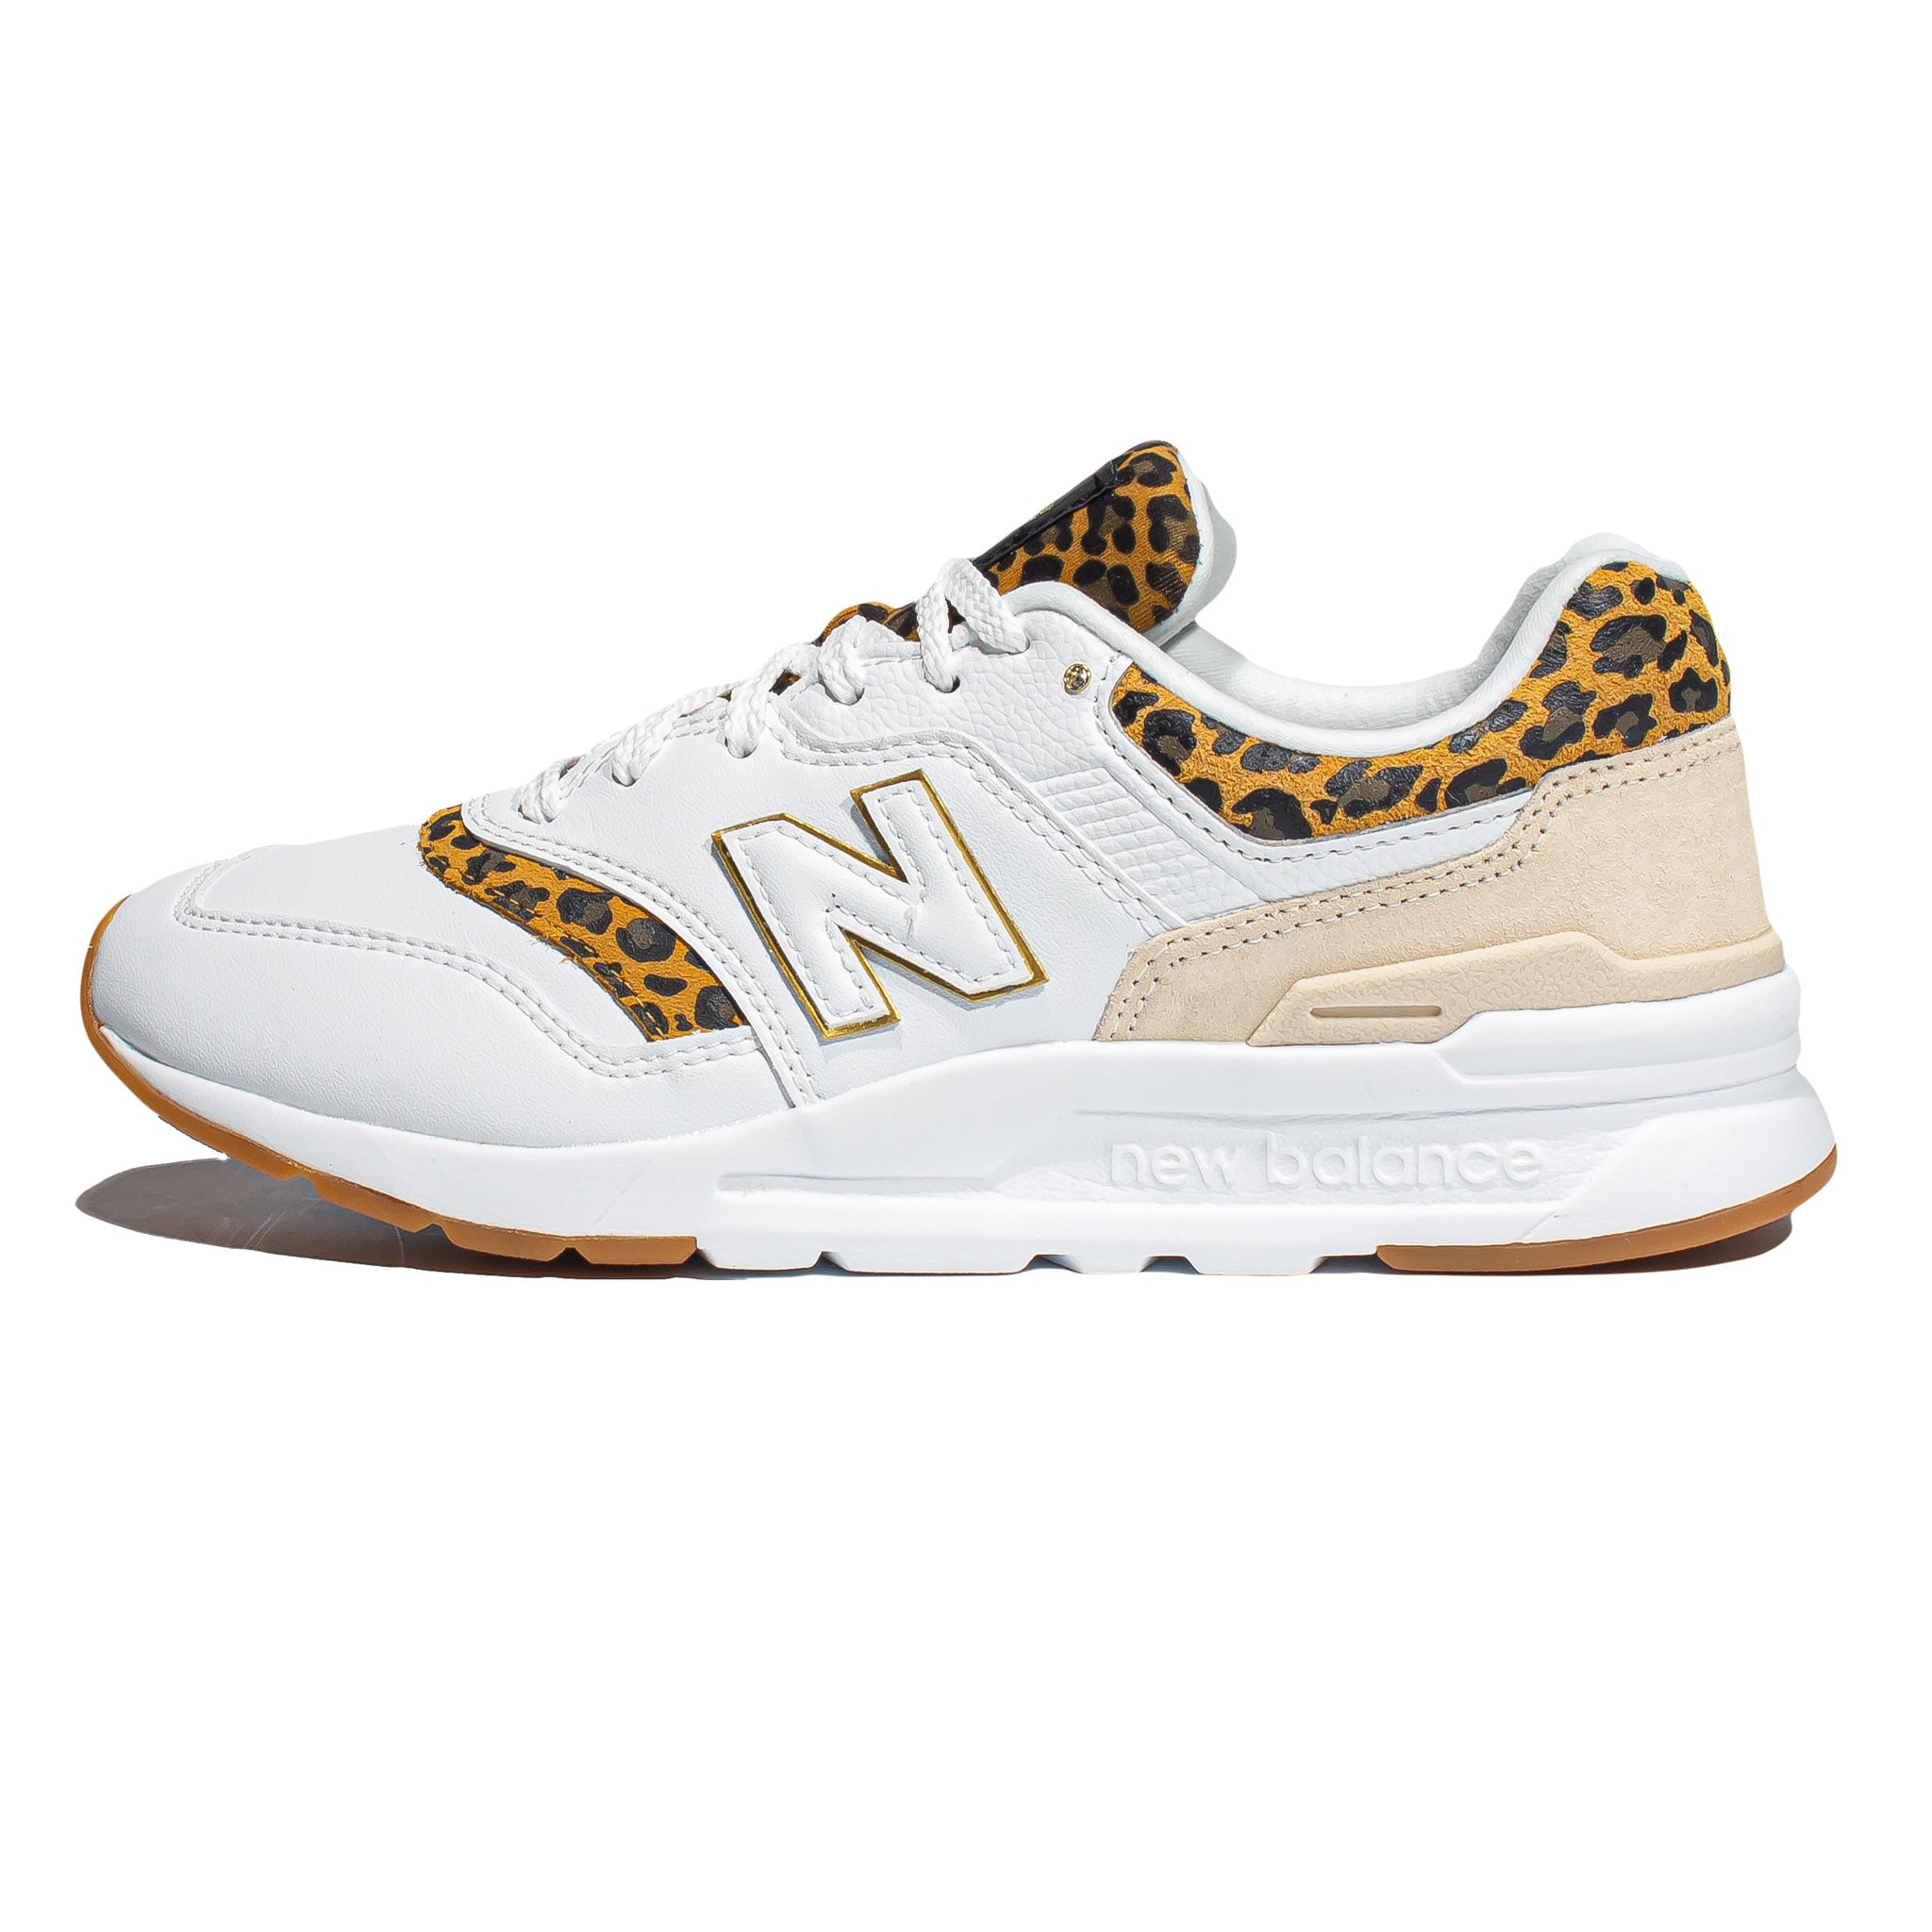 New Balance CW997HCJ 'Animal Pack'